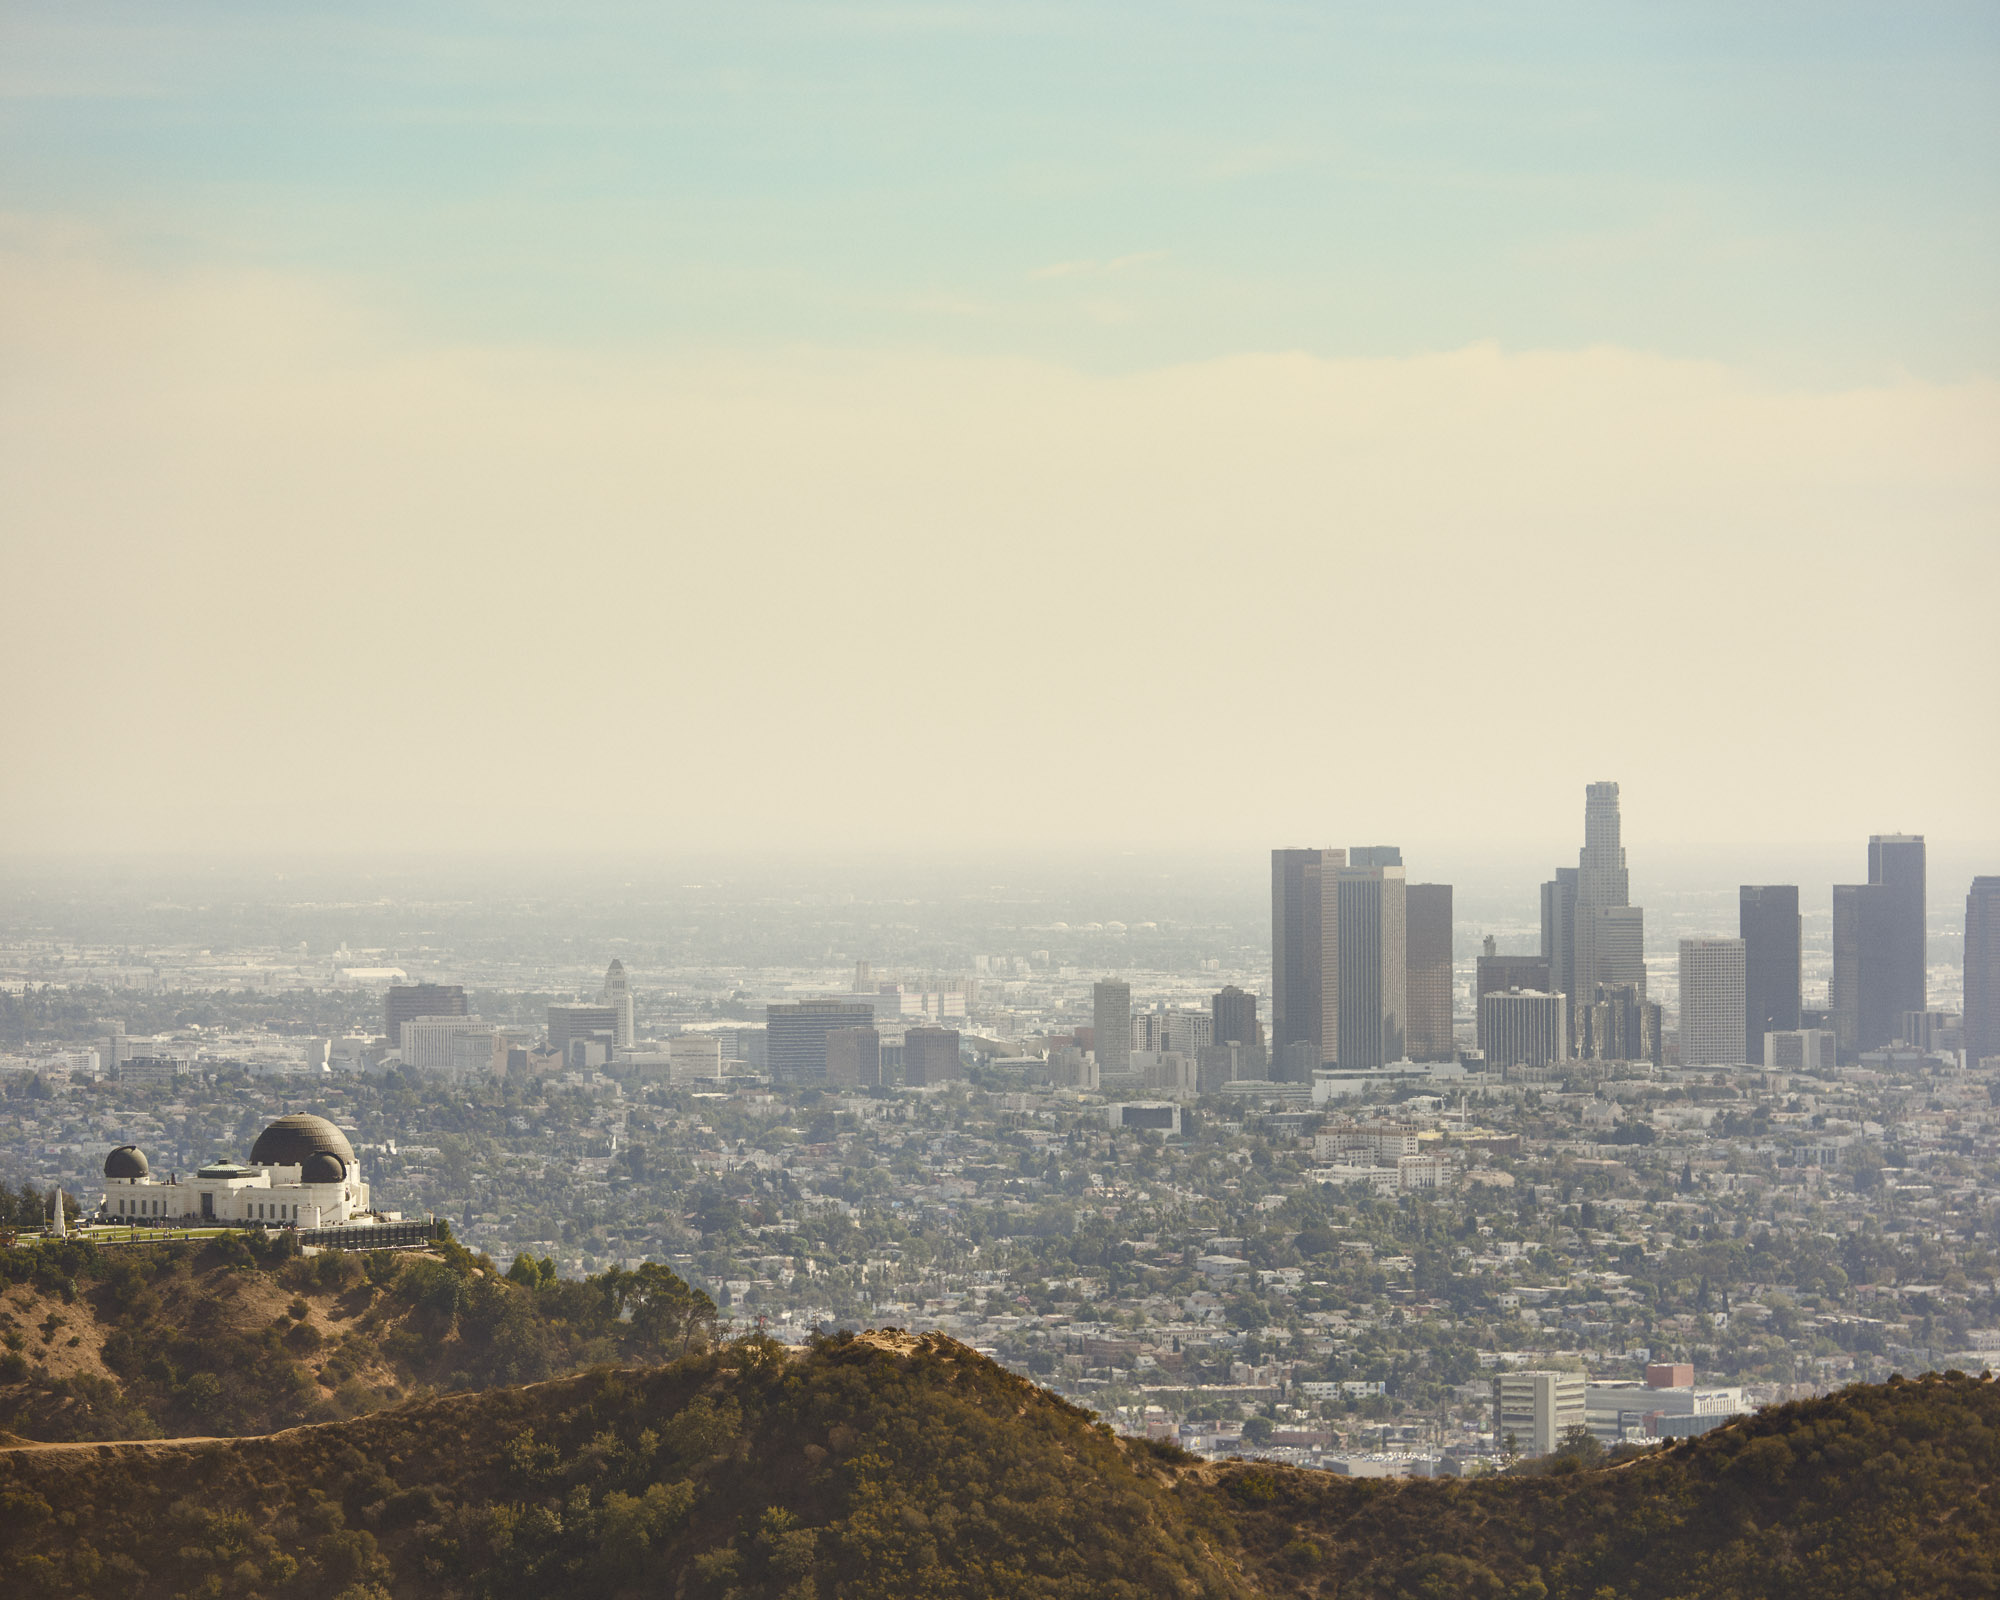 Griffith Park, Los Angeles, California